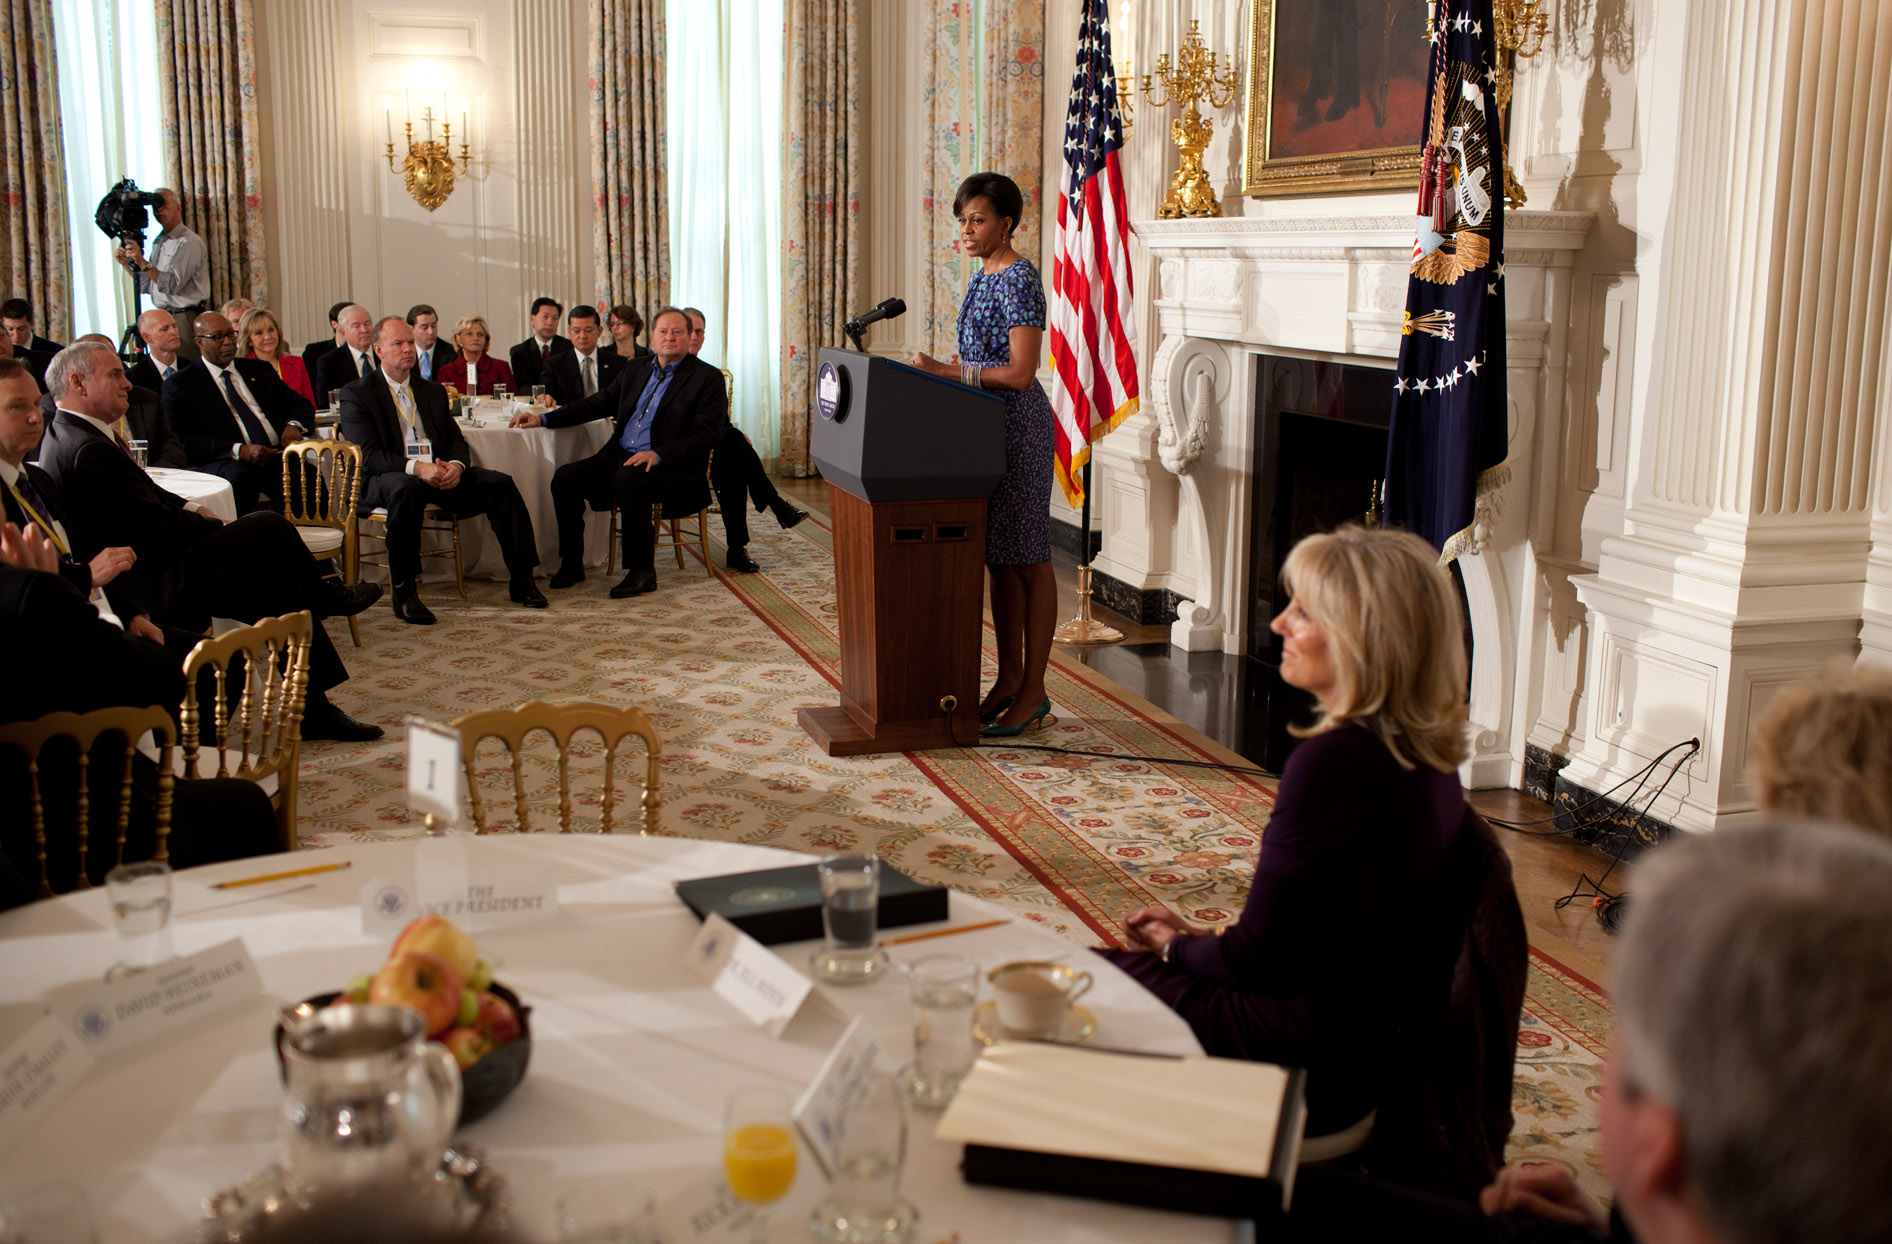 First Lady Michelle Obama delivers remarks to governors attending the National Governors Association's meeting